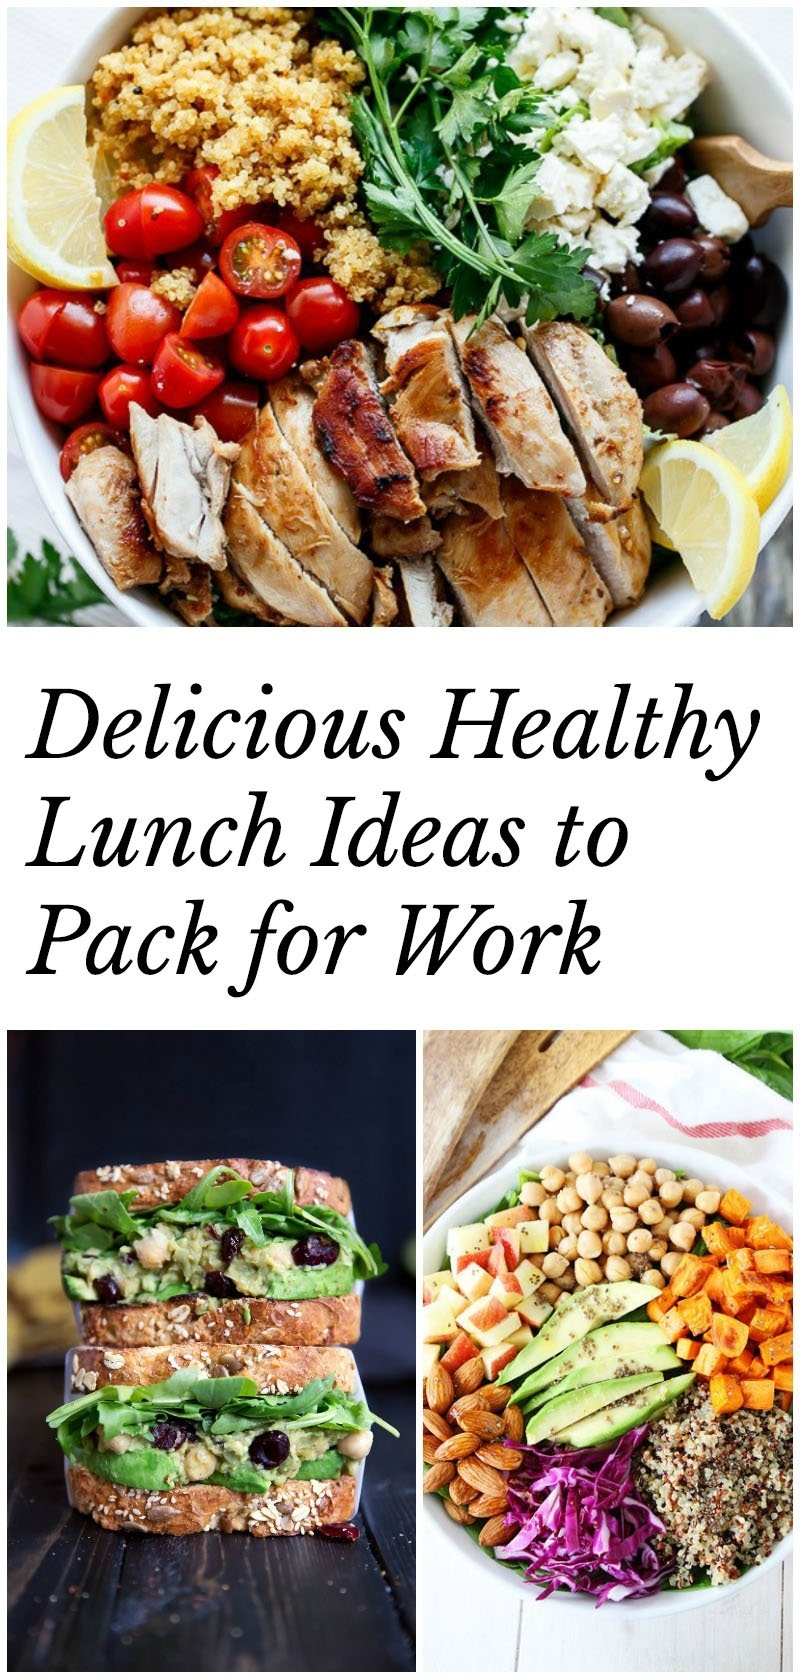 10 Unique High Protein Lunch Ideas For Work healthy lunch ideas to pack for work 40 recipes 9